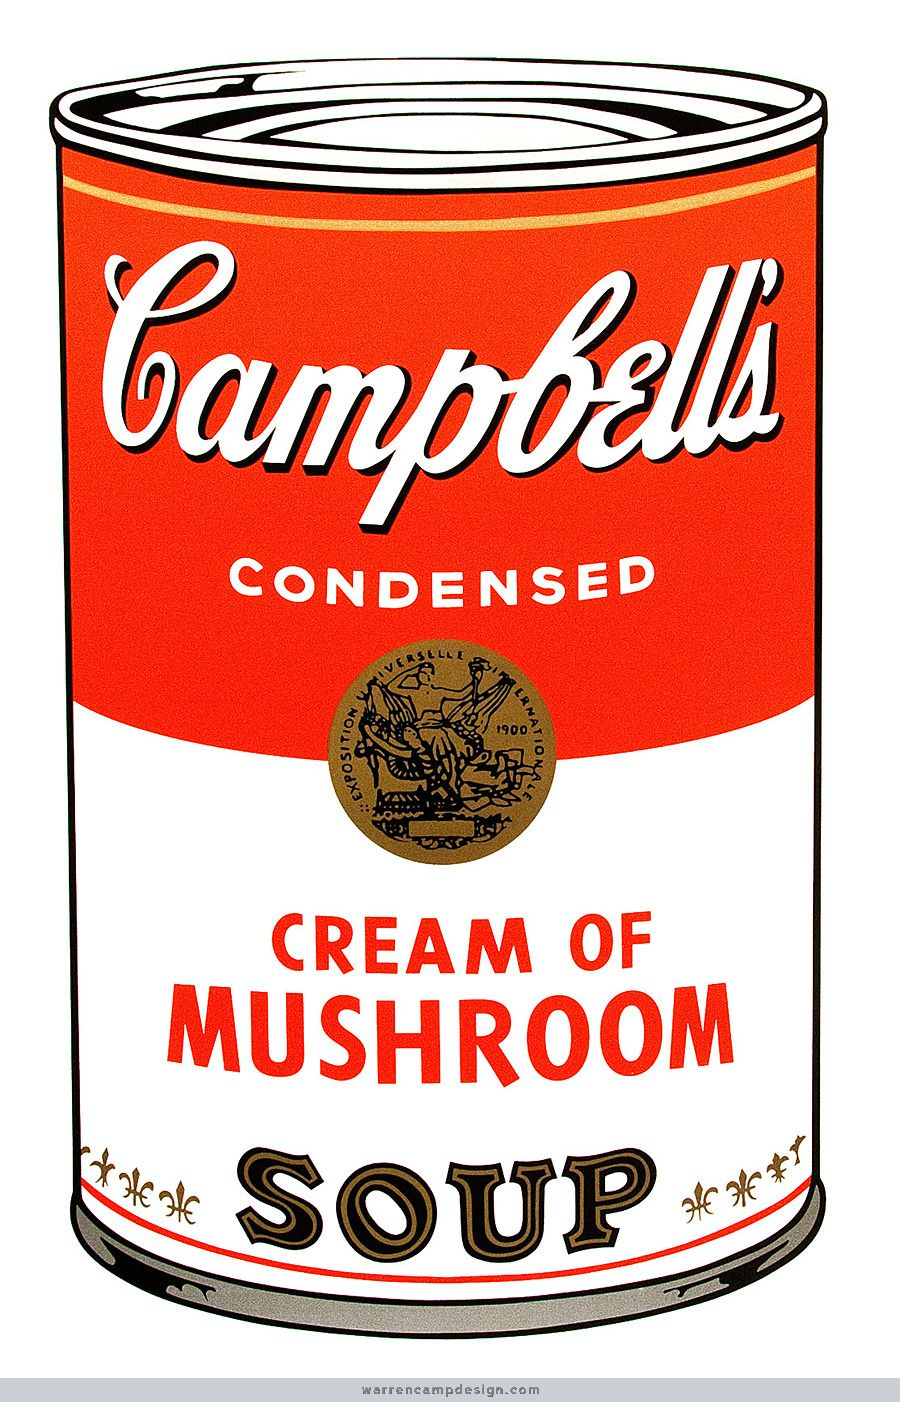 Canned Soup Substitute.